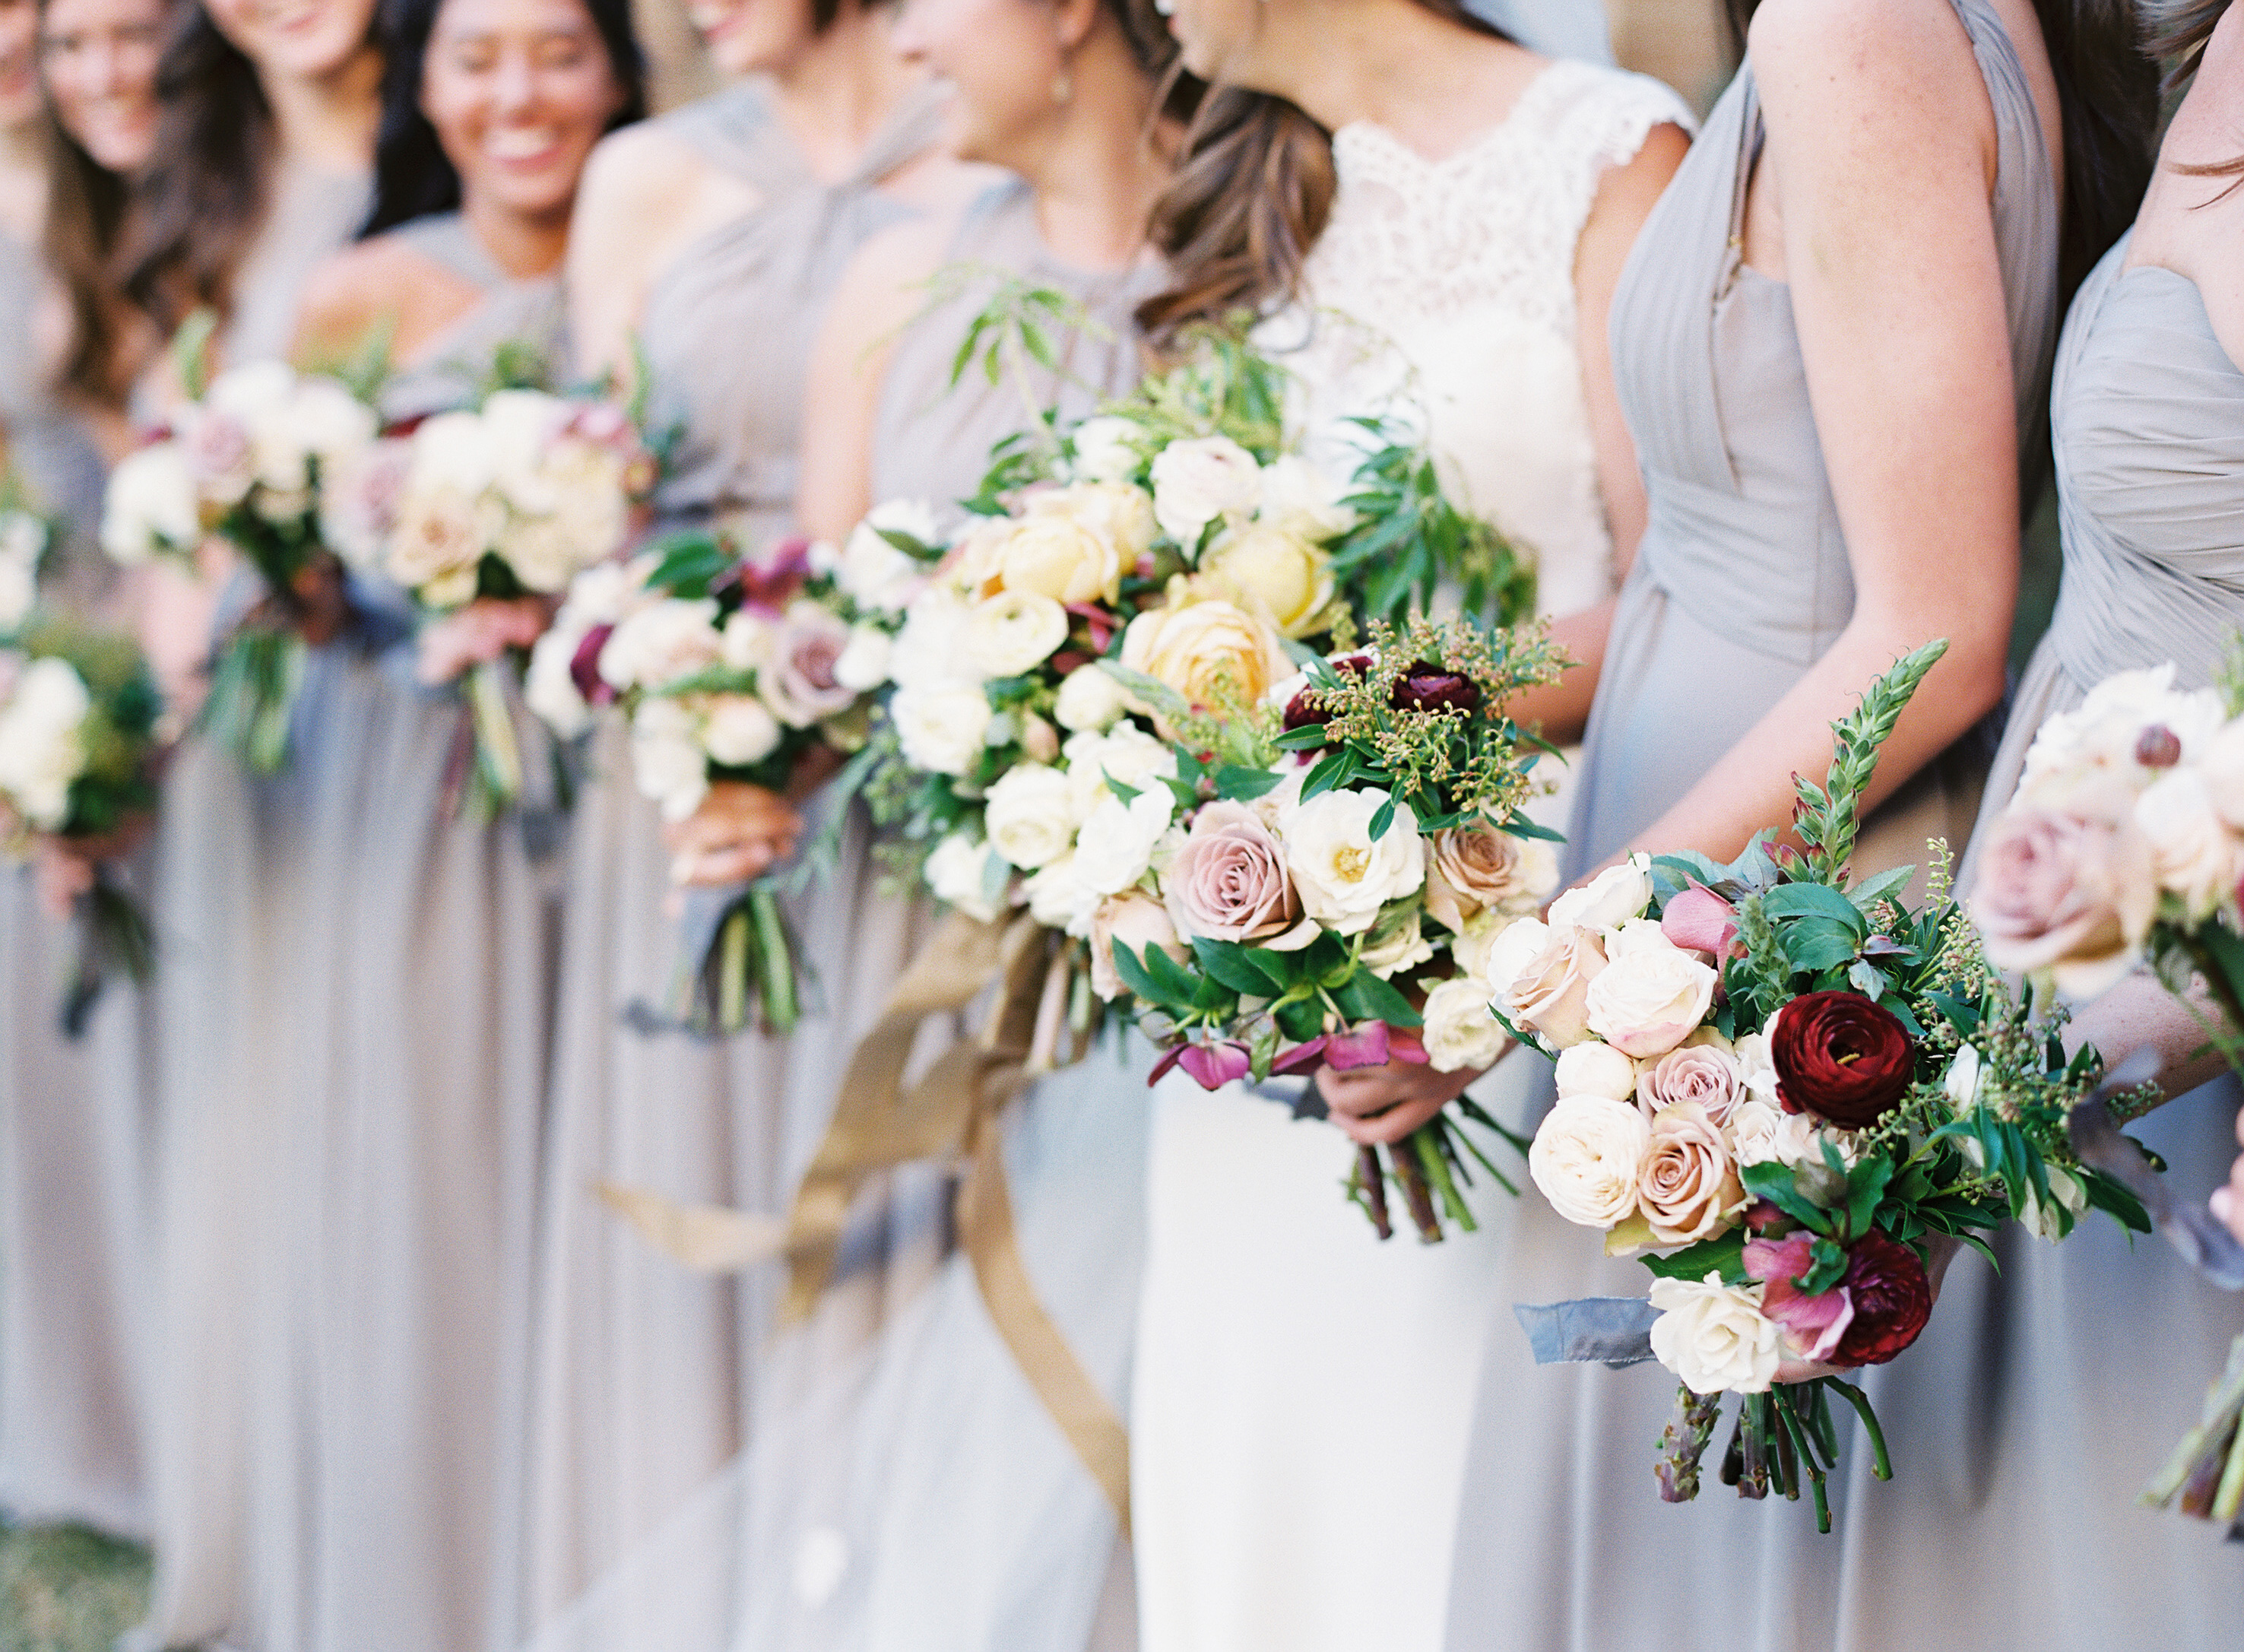 Do You Have to Ask Your Future Sister-in-Law to Be a Bridesmaid?